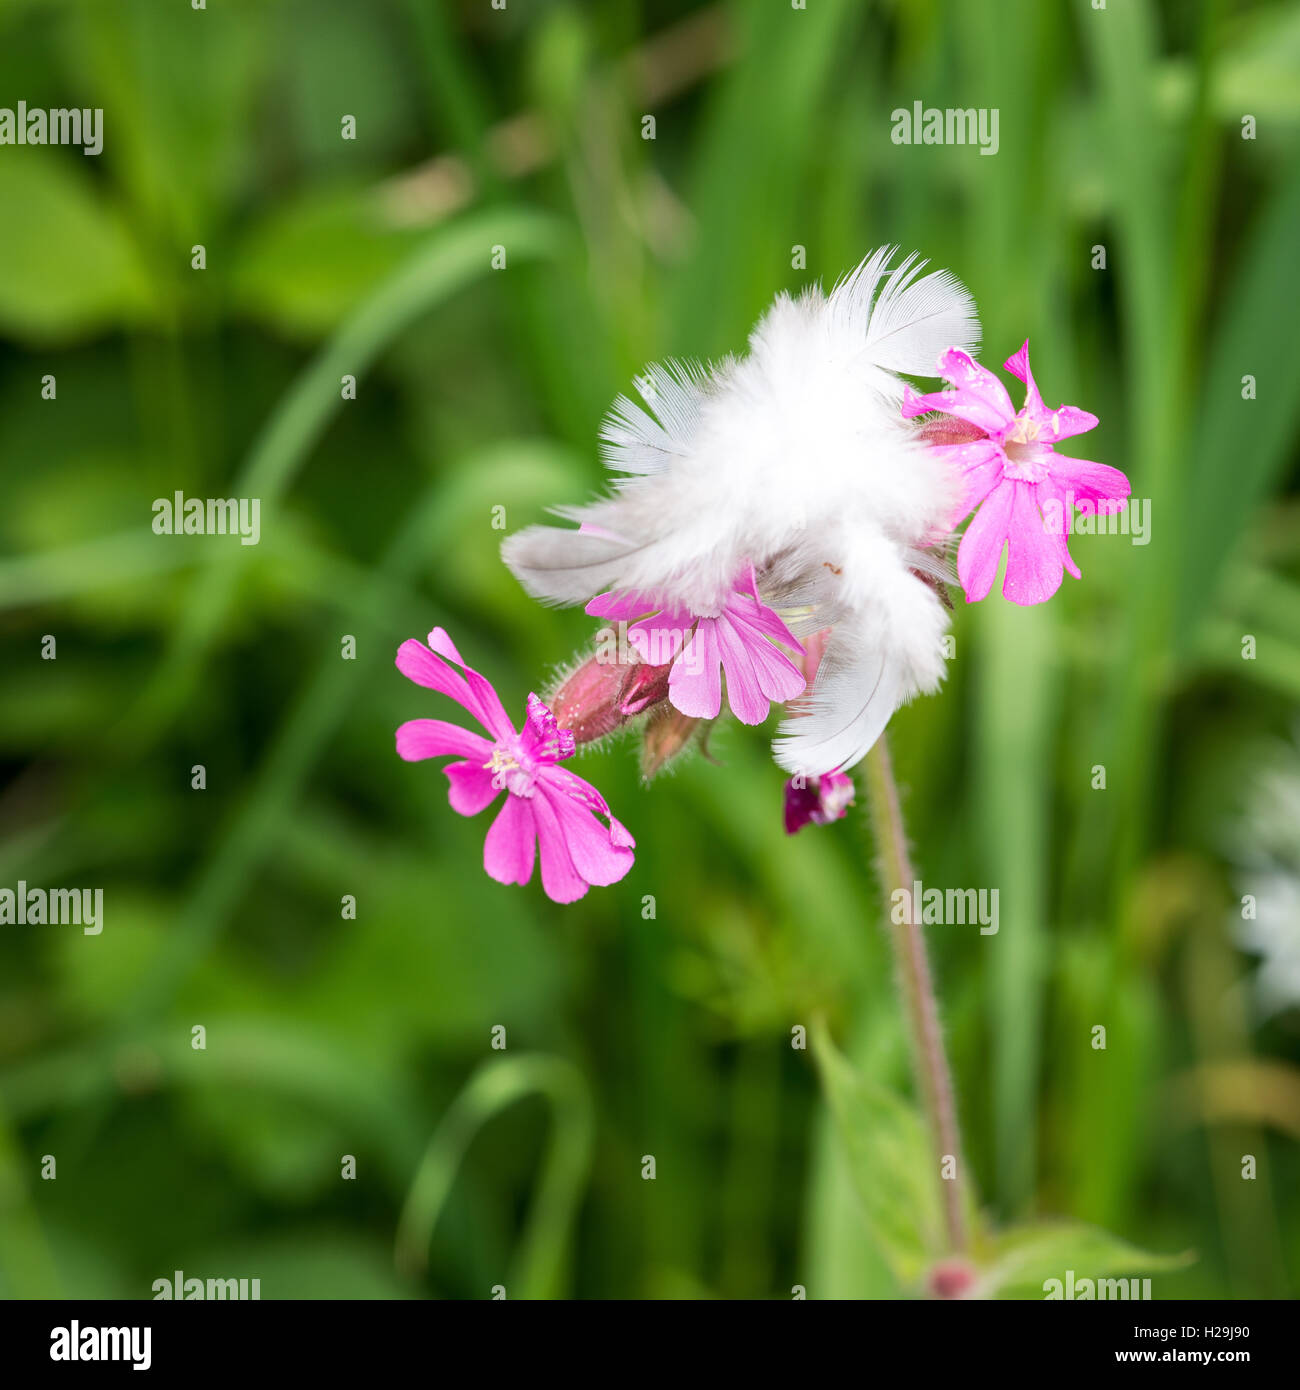 Pink campion flower stock photos pink campion flower stock images feather captured on a pink flower campion stock image mightylinksfo